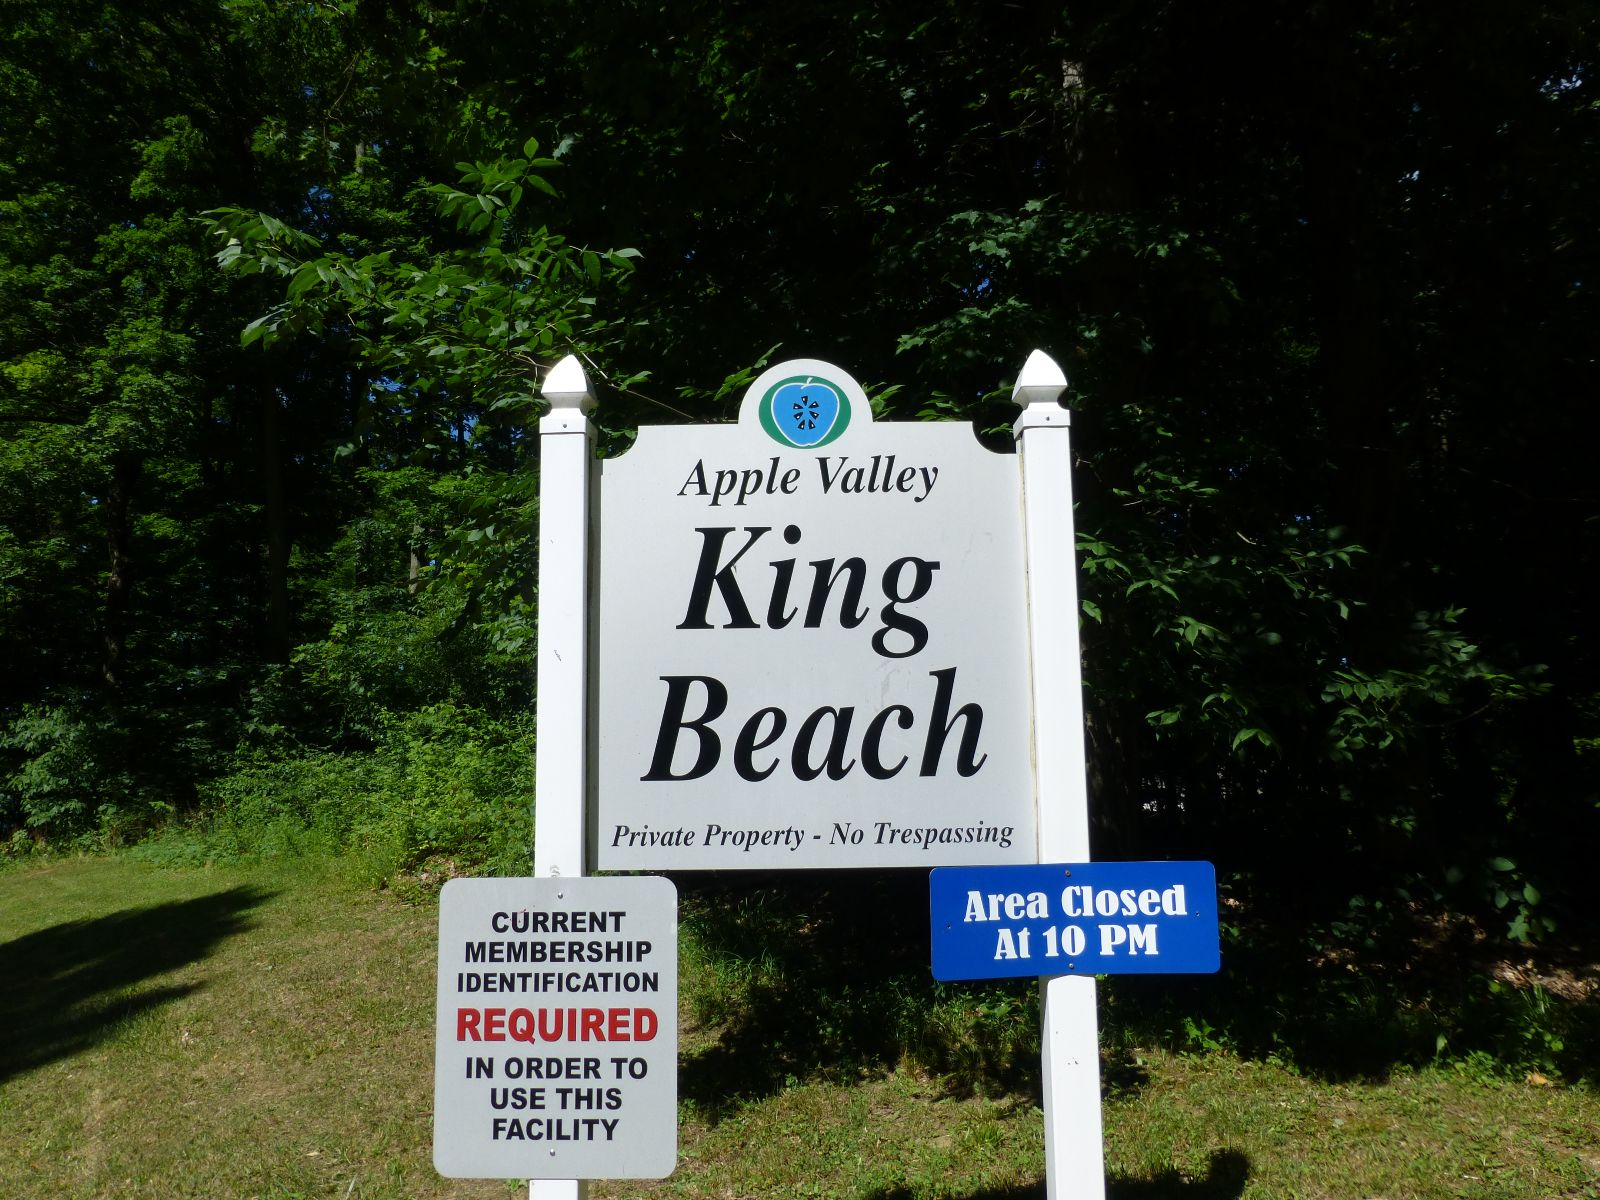 King Beach at Apple Valley Lake